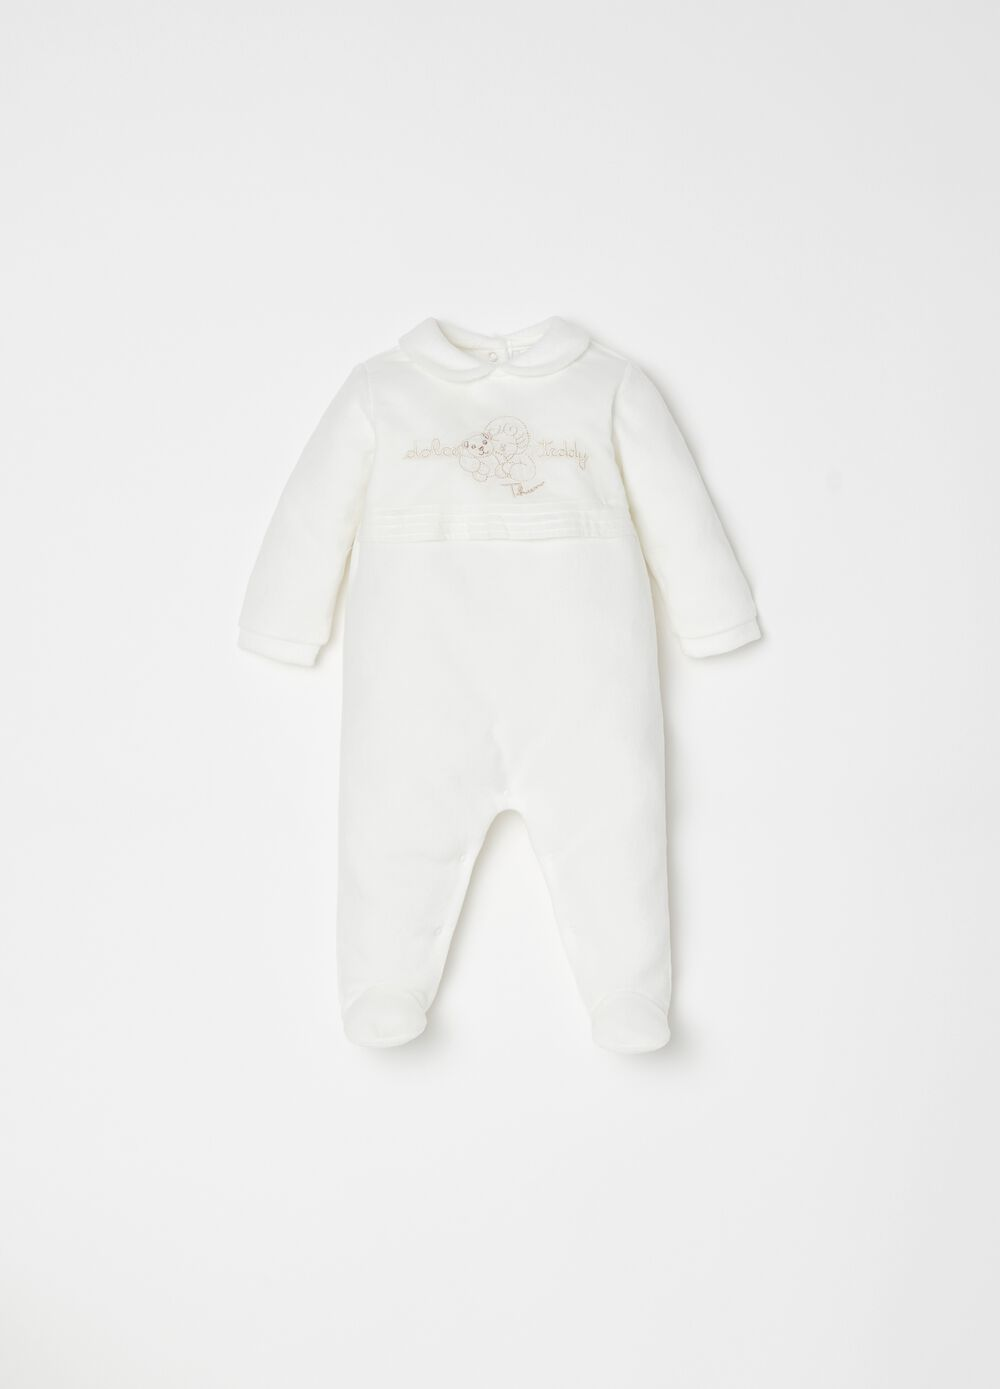 THUN Teddy onesie with feet and embroidery